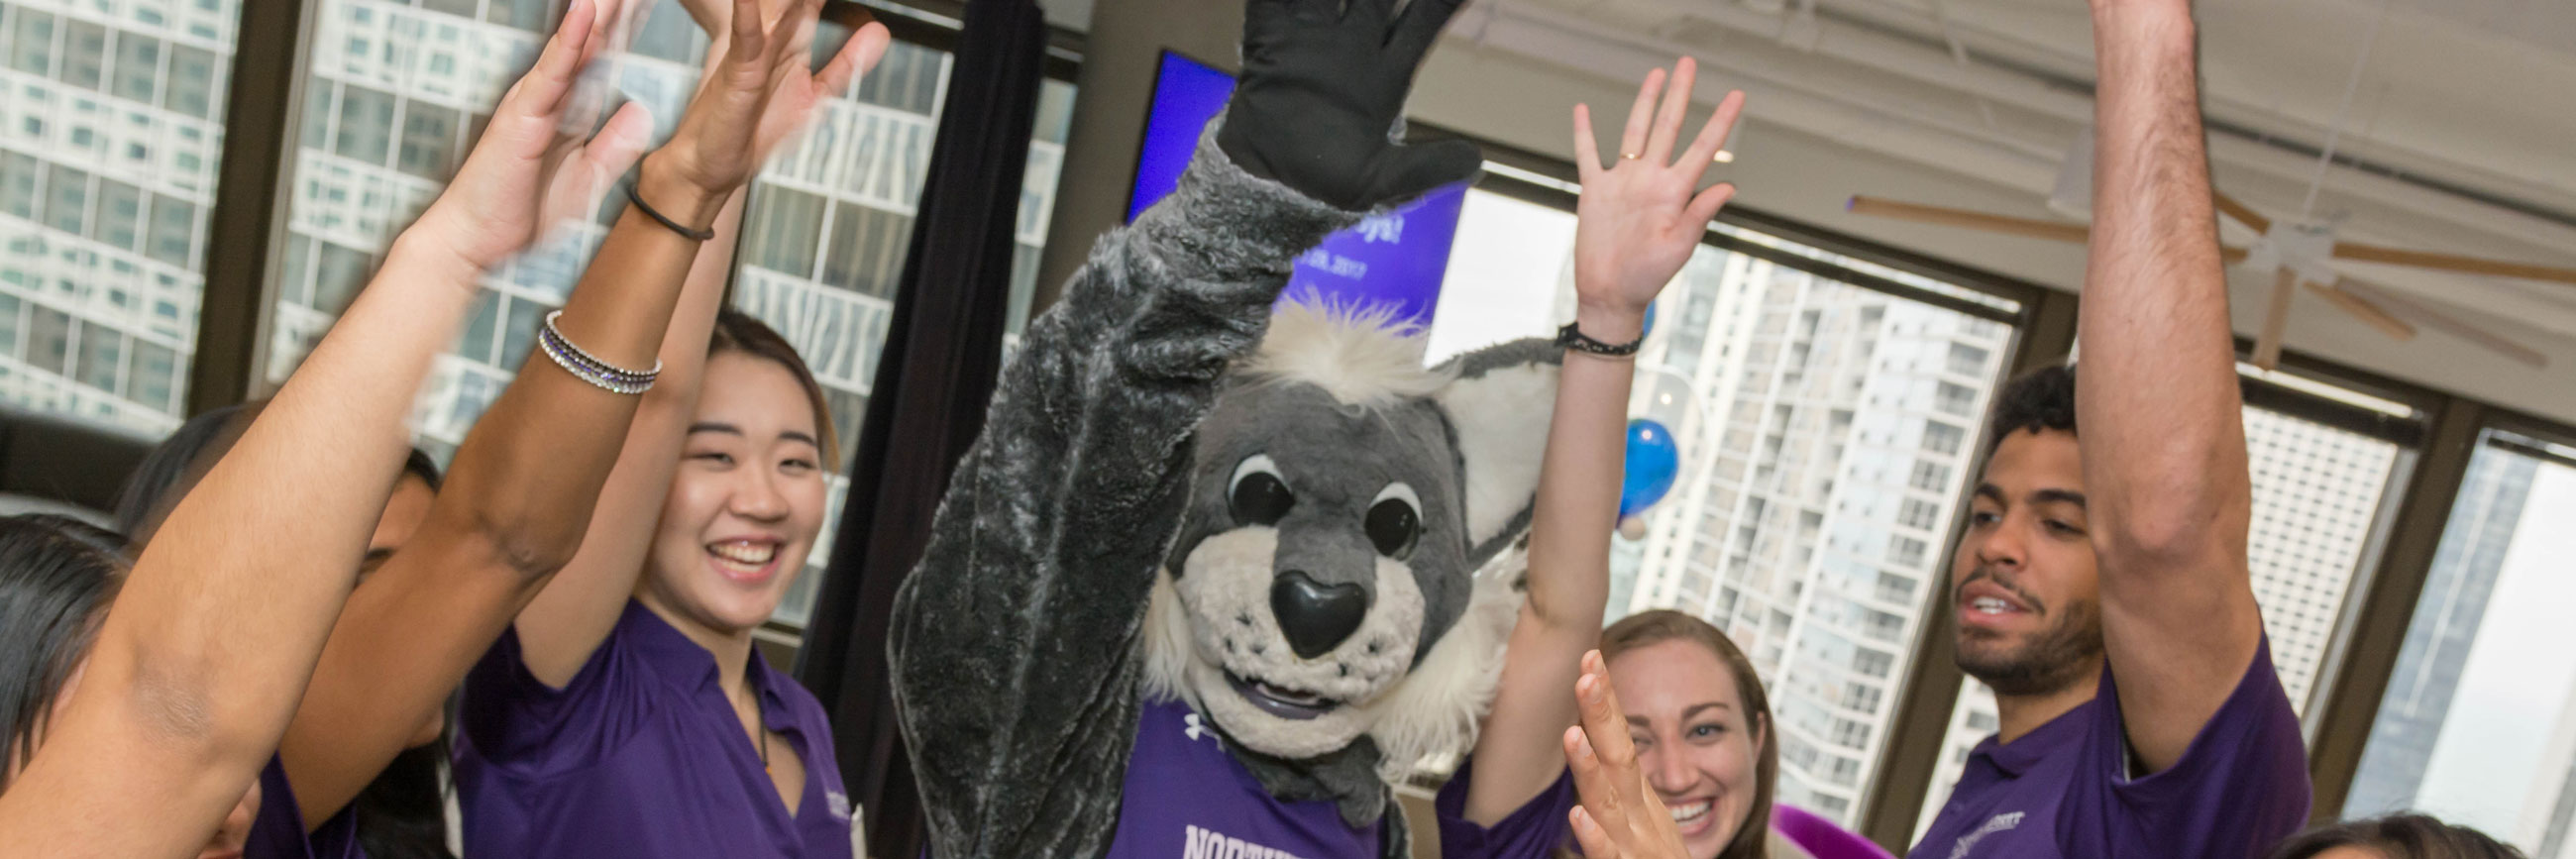 Students raise their hands in excitement with Willie the Wildcat